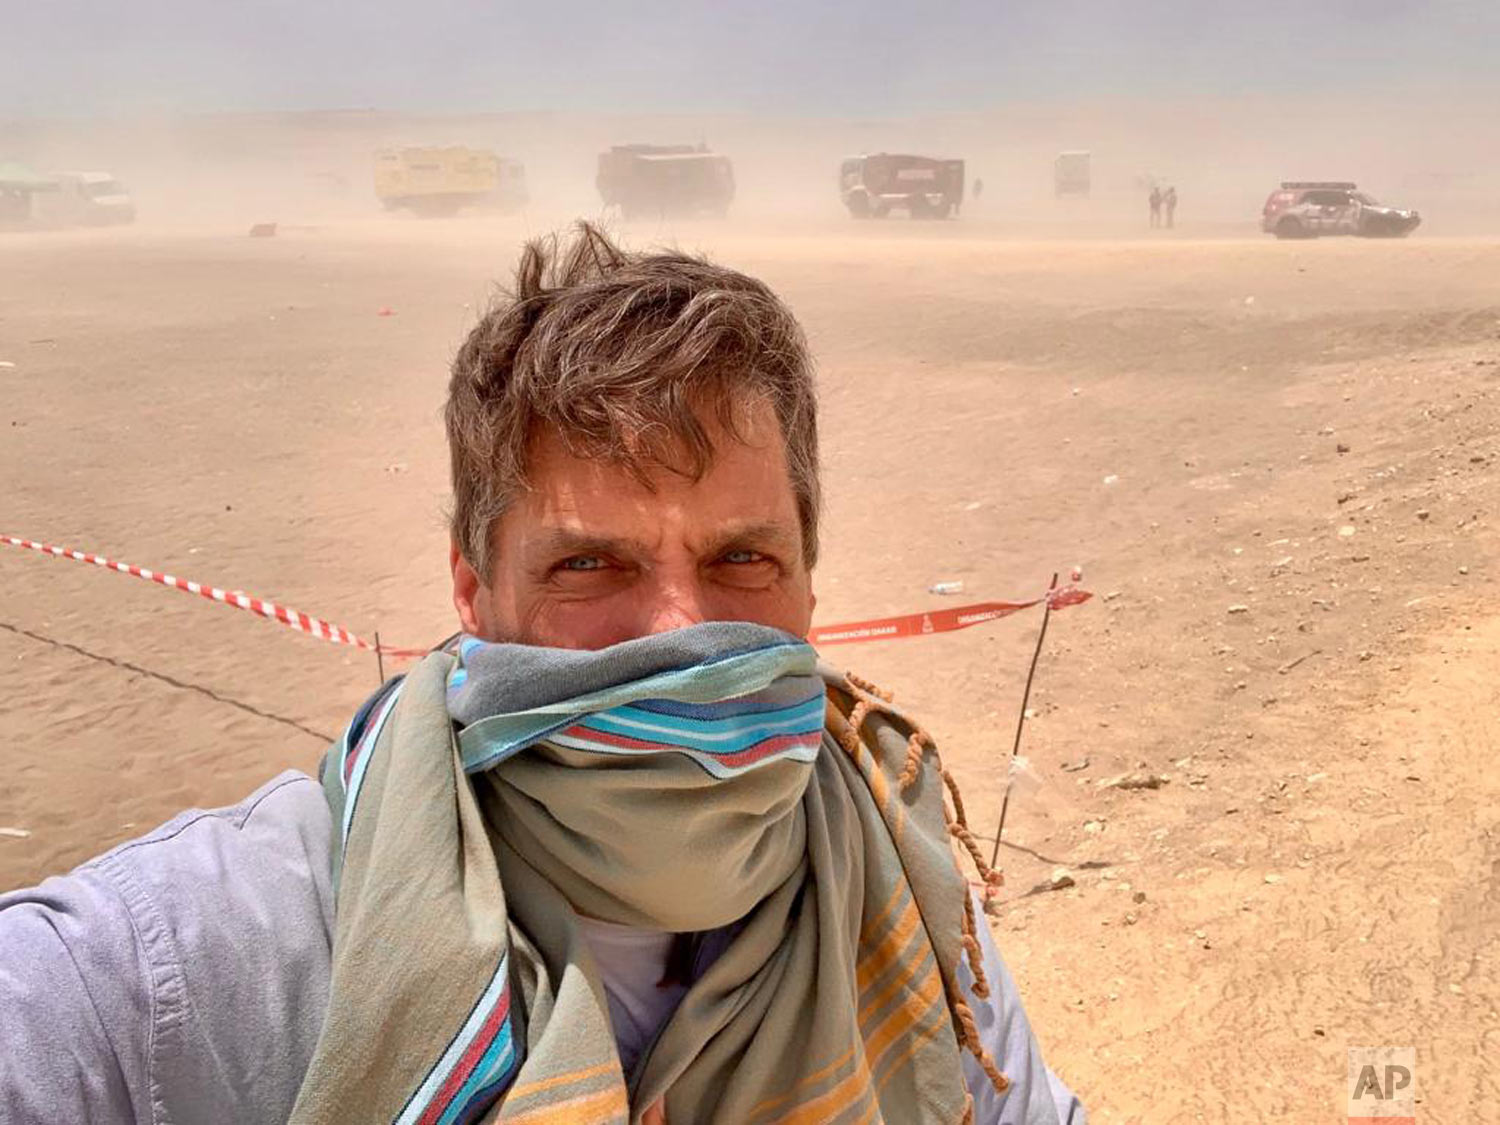 AP photographer Mazalan takes a selfie during a sand storm on the last day of the race, Jan. 17. (AP Photo/Ricardo Mazalan)